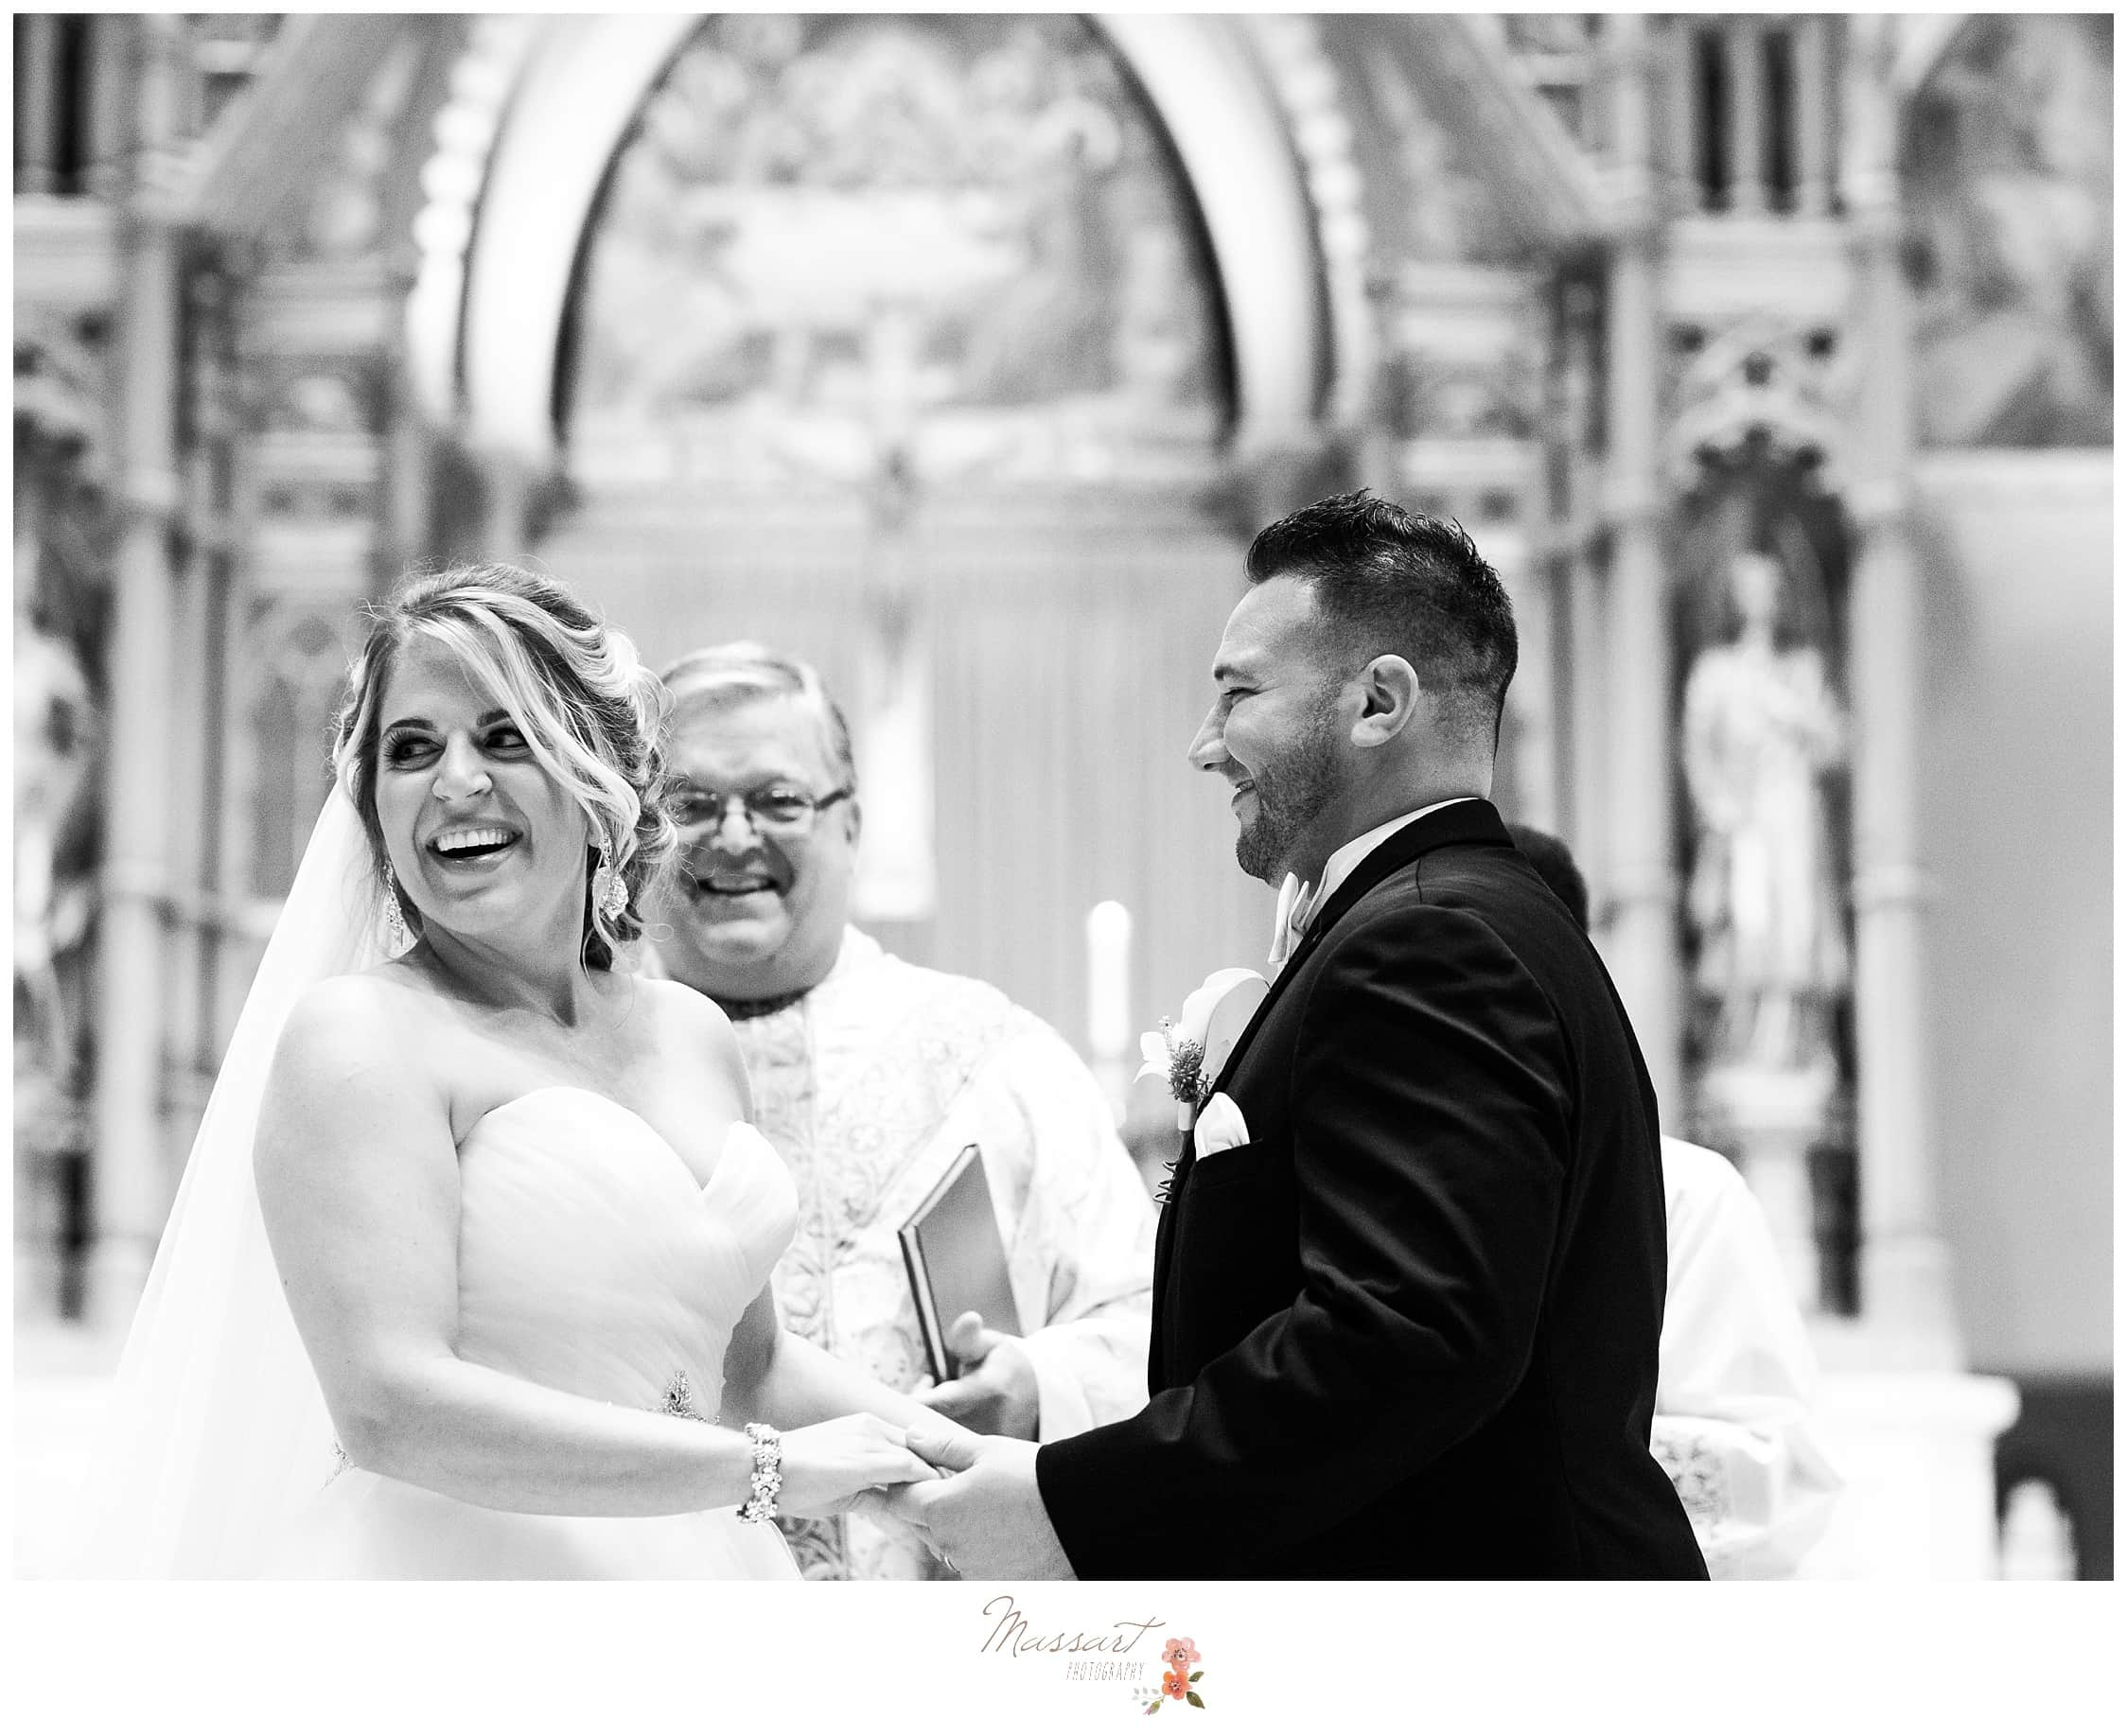 Black and white portrait of the bride and groom at the altar photographed by Massart Photography of Warwick RI